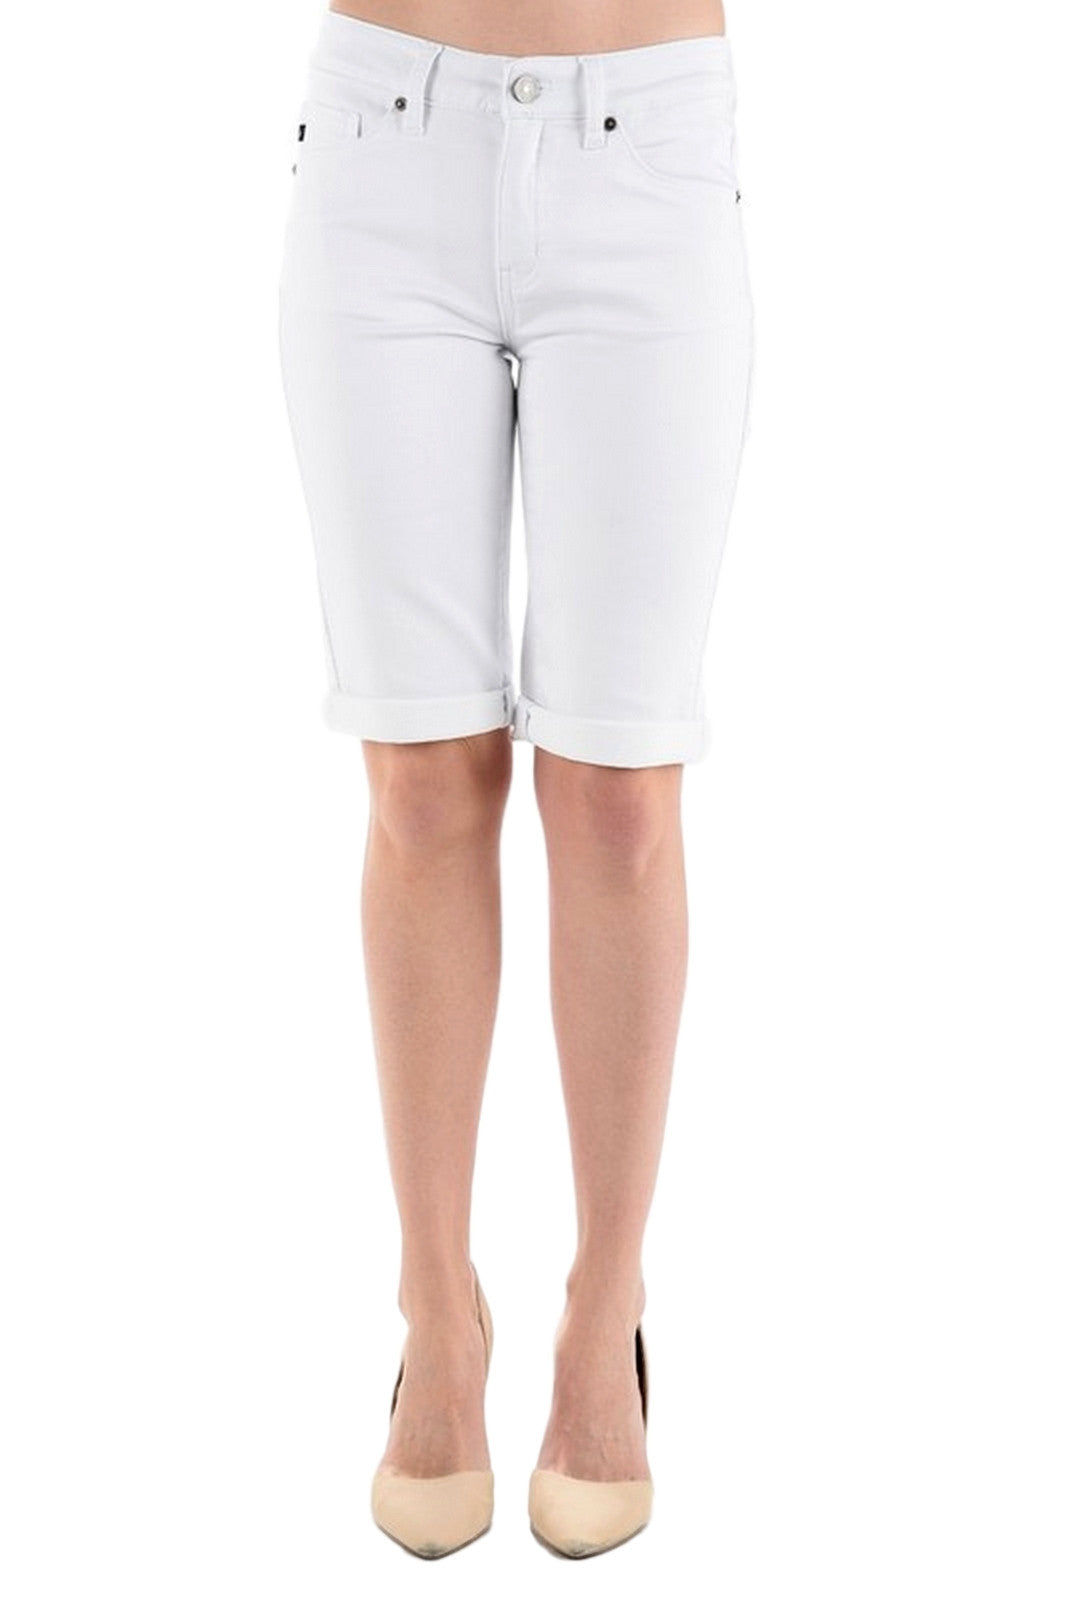 Kan Can Women's Mid Rise Bermuda Jeans White  KC5020WT